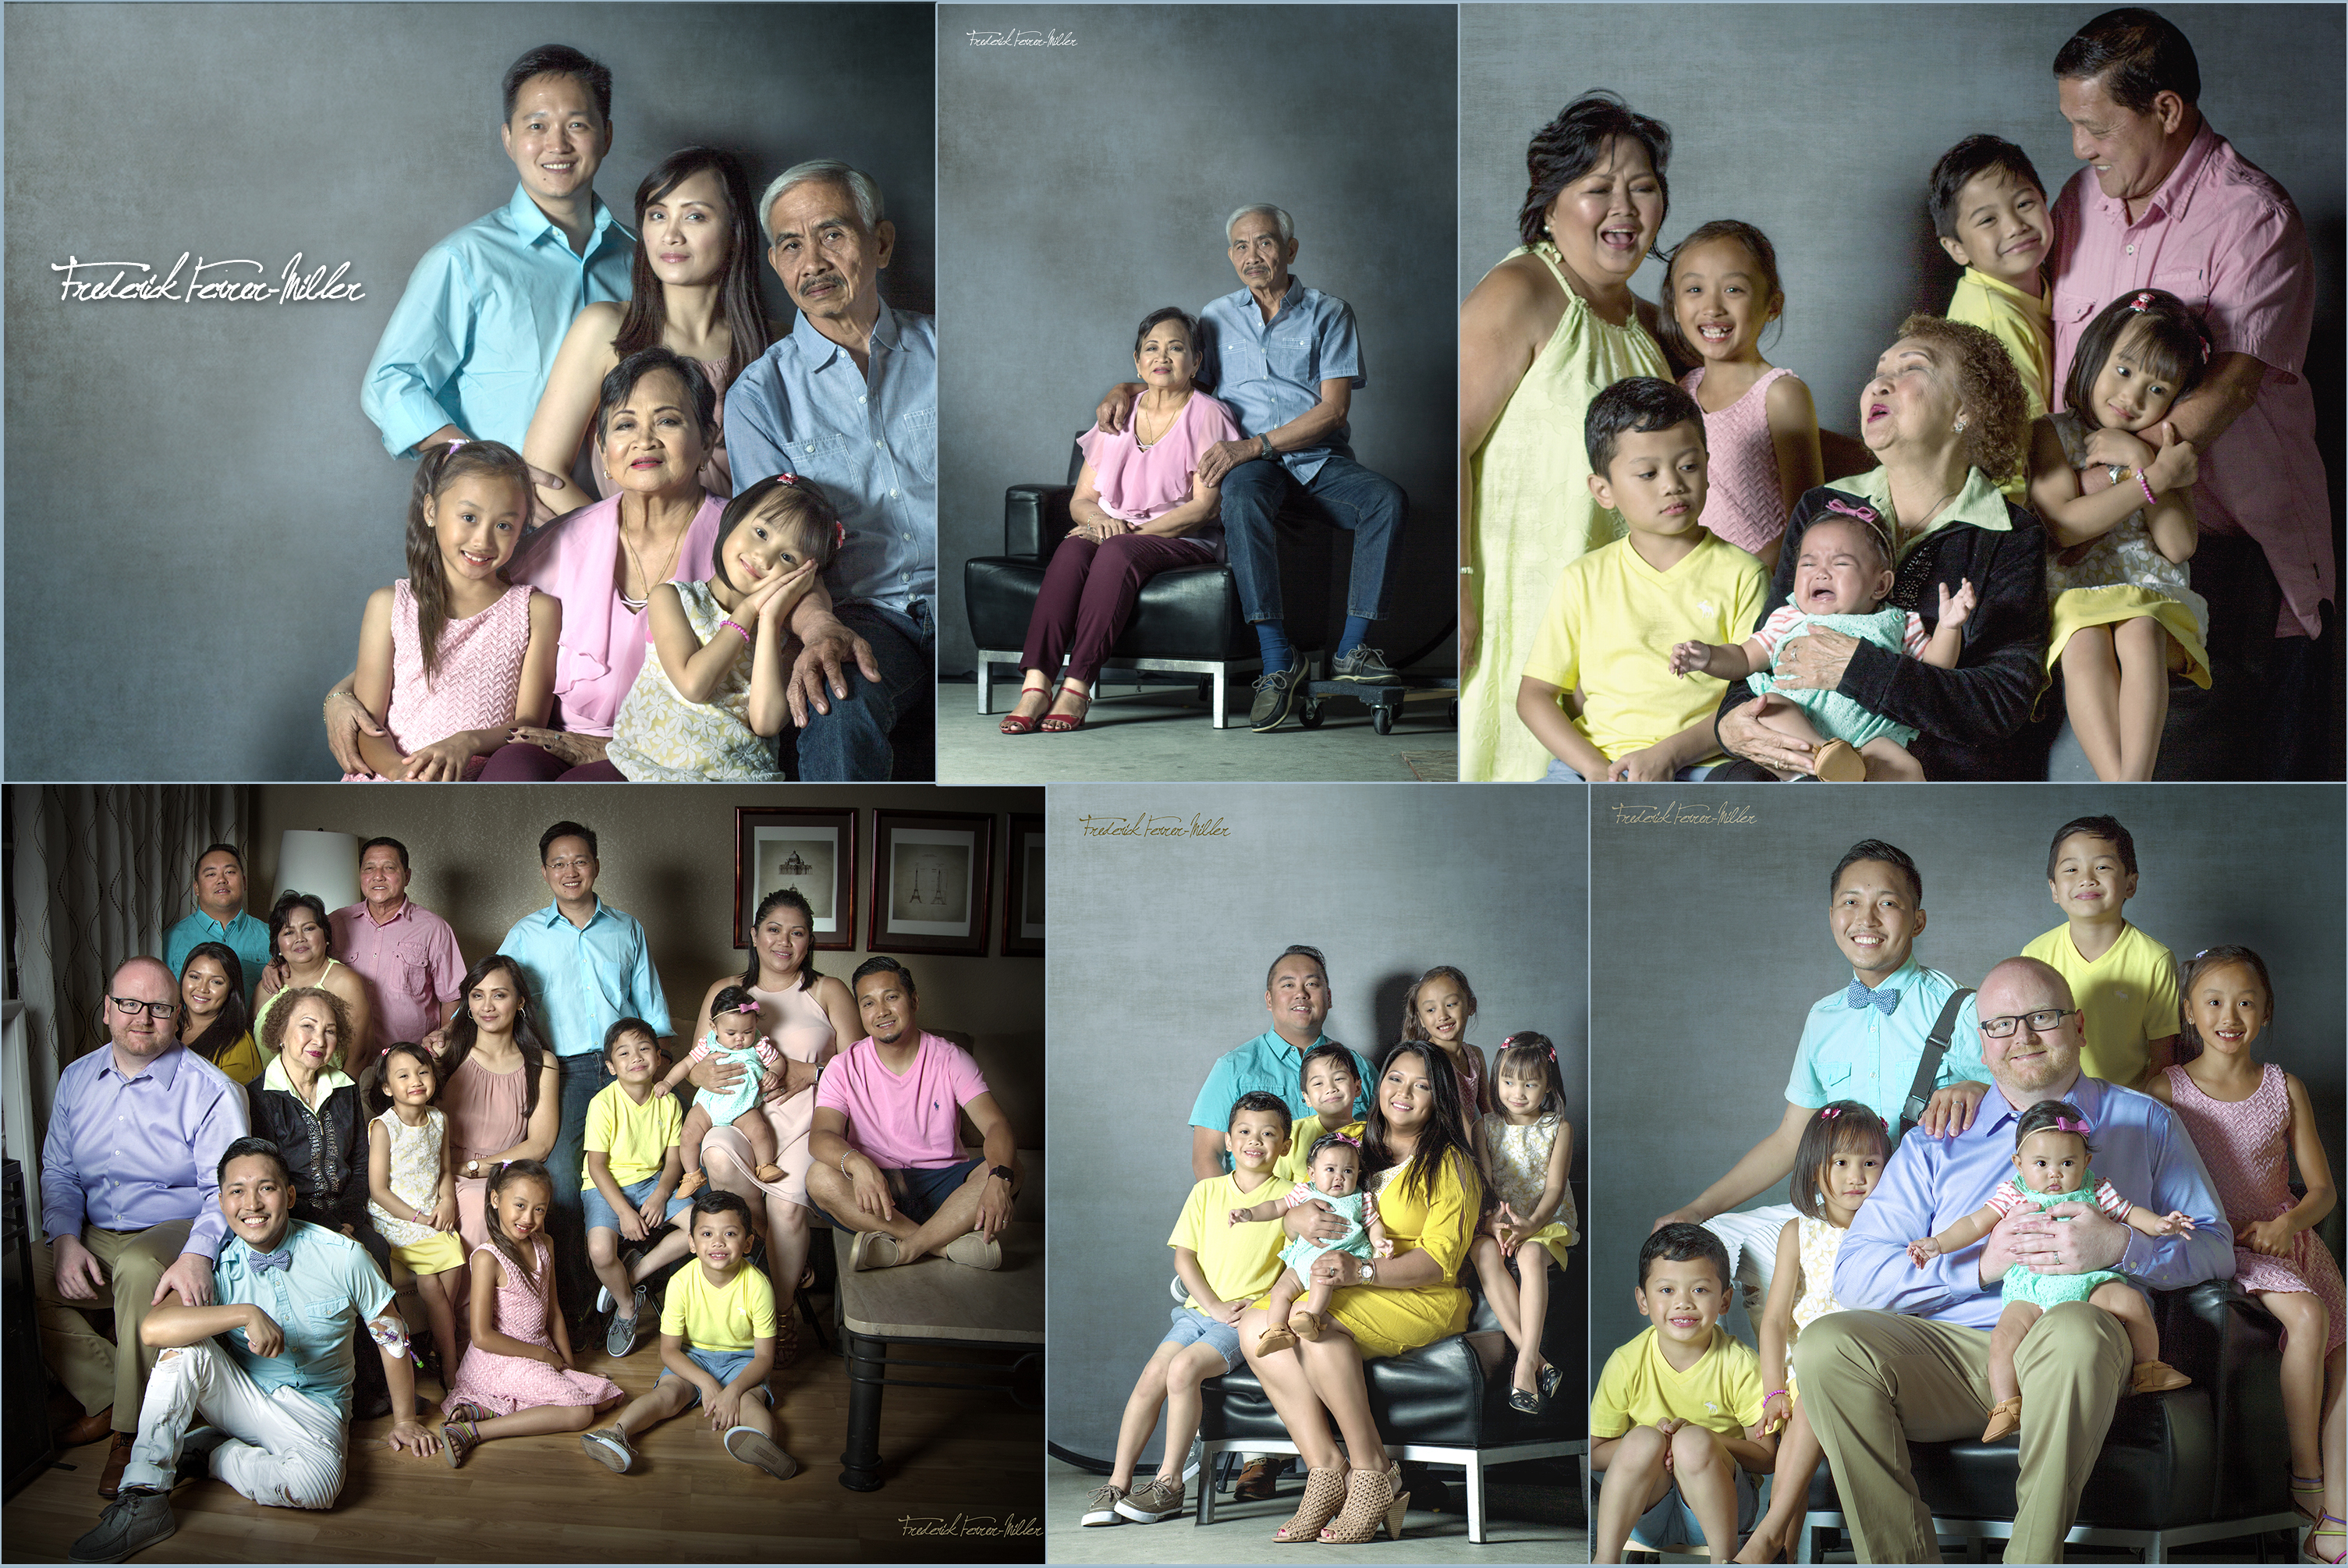 Ferrer Family Photos